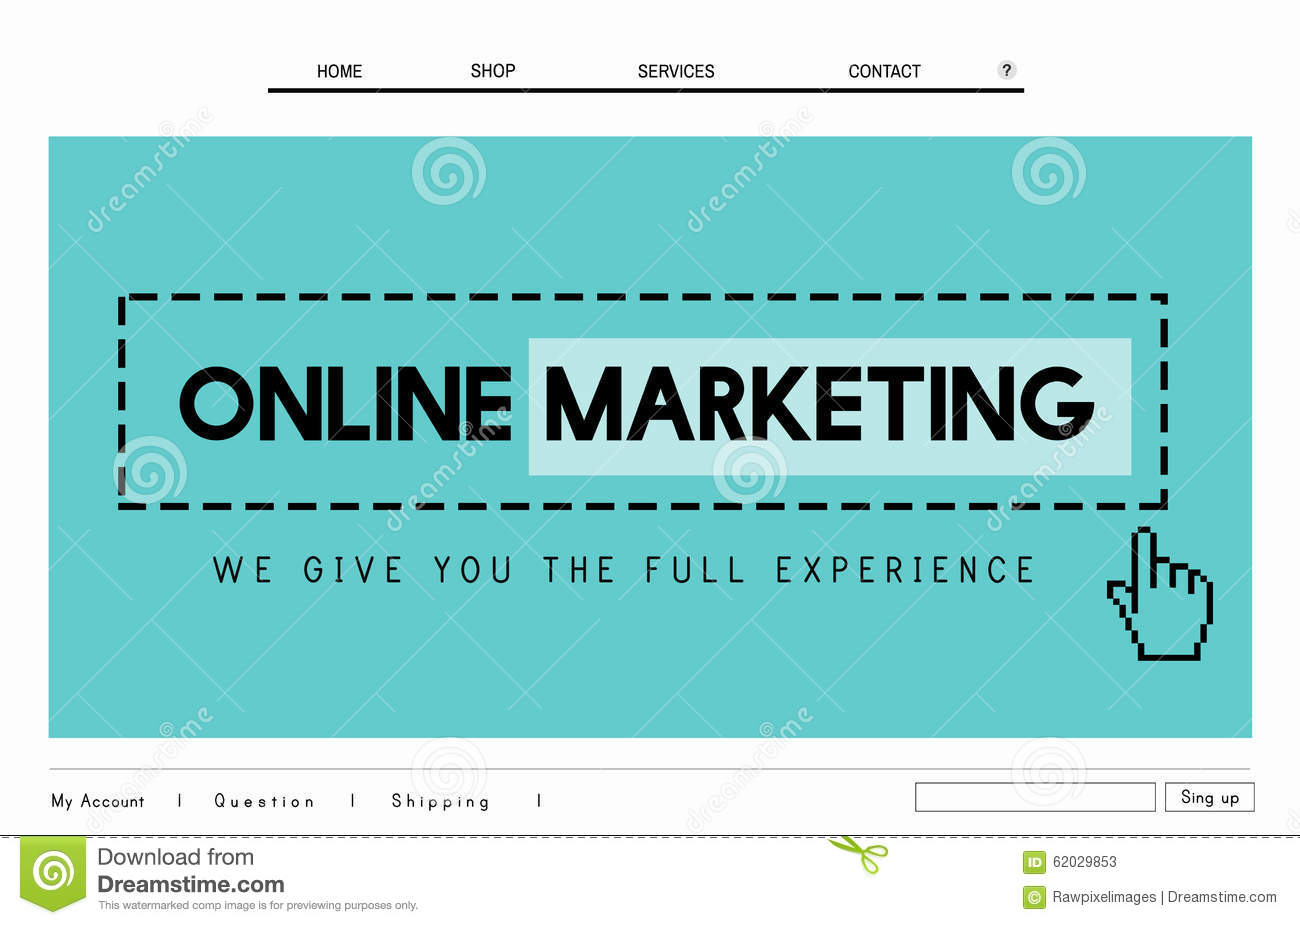 Marketing plan for online business example